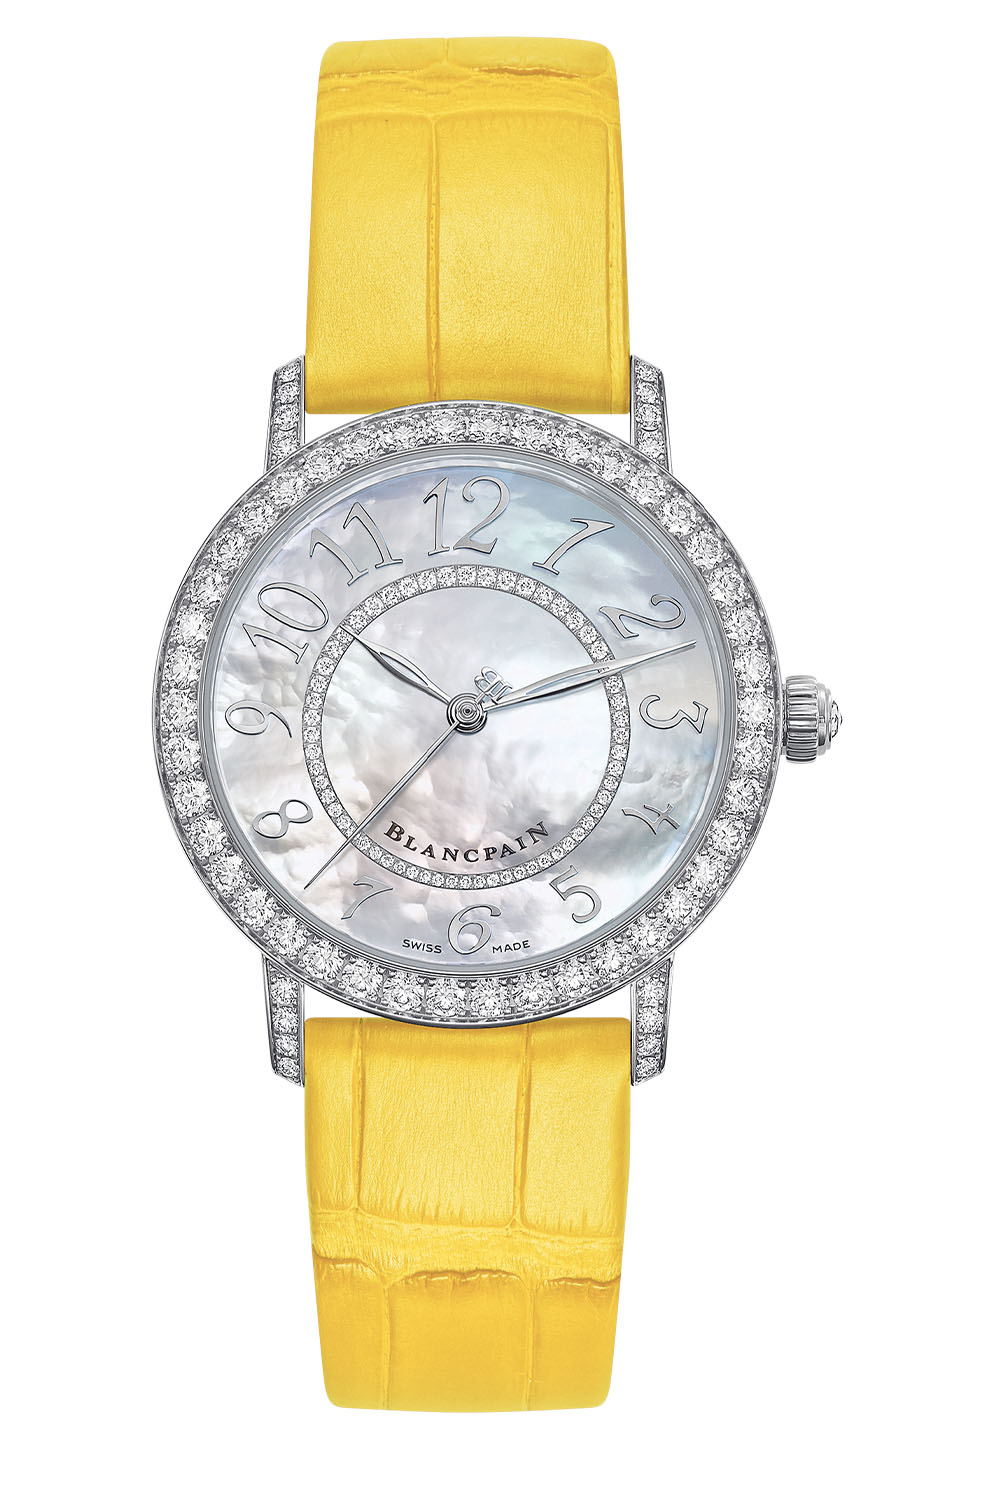 Blancpain Ladybird Colors Collection